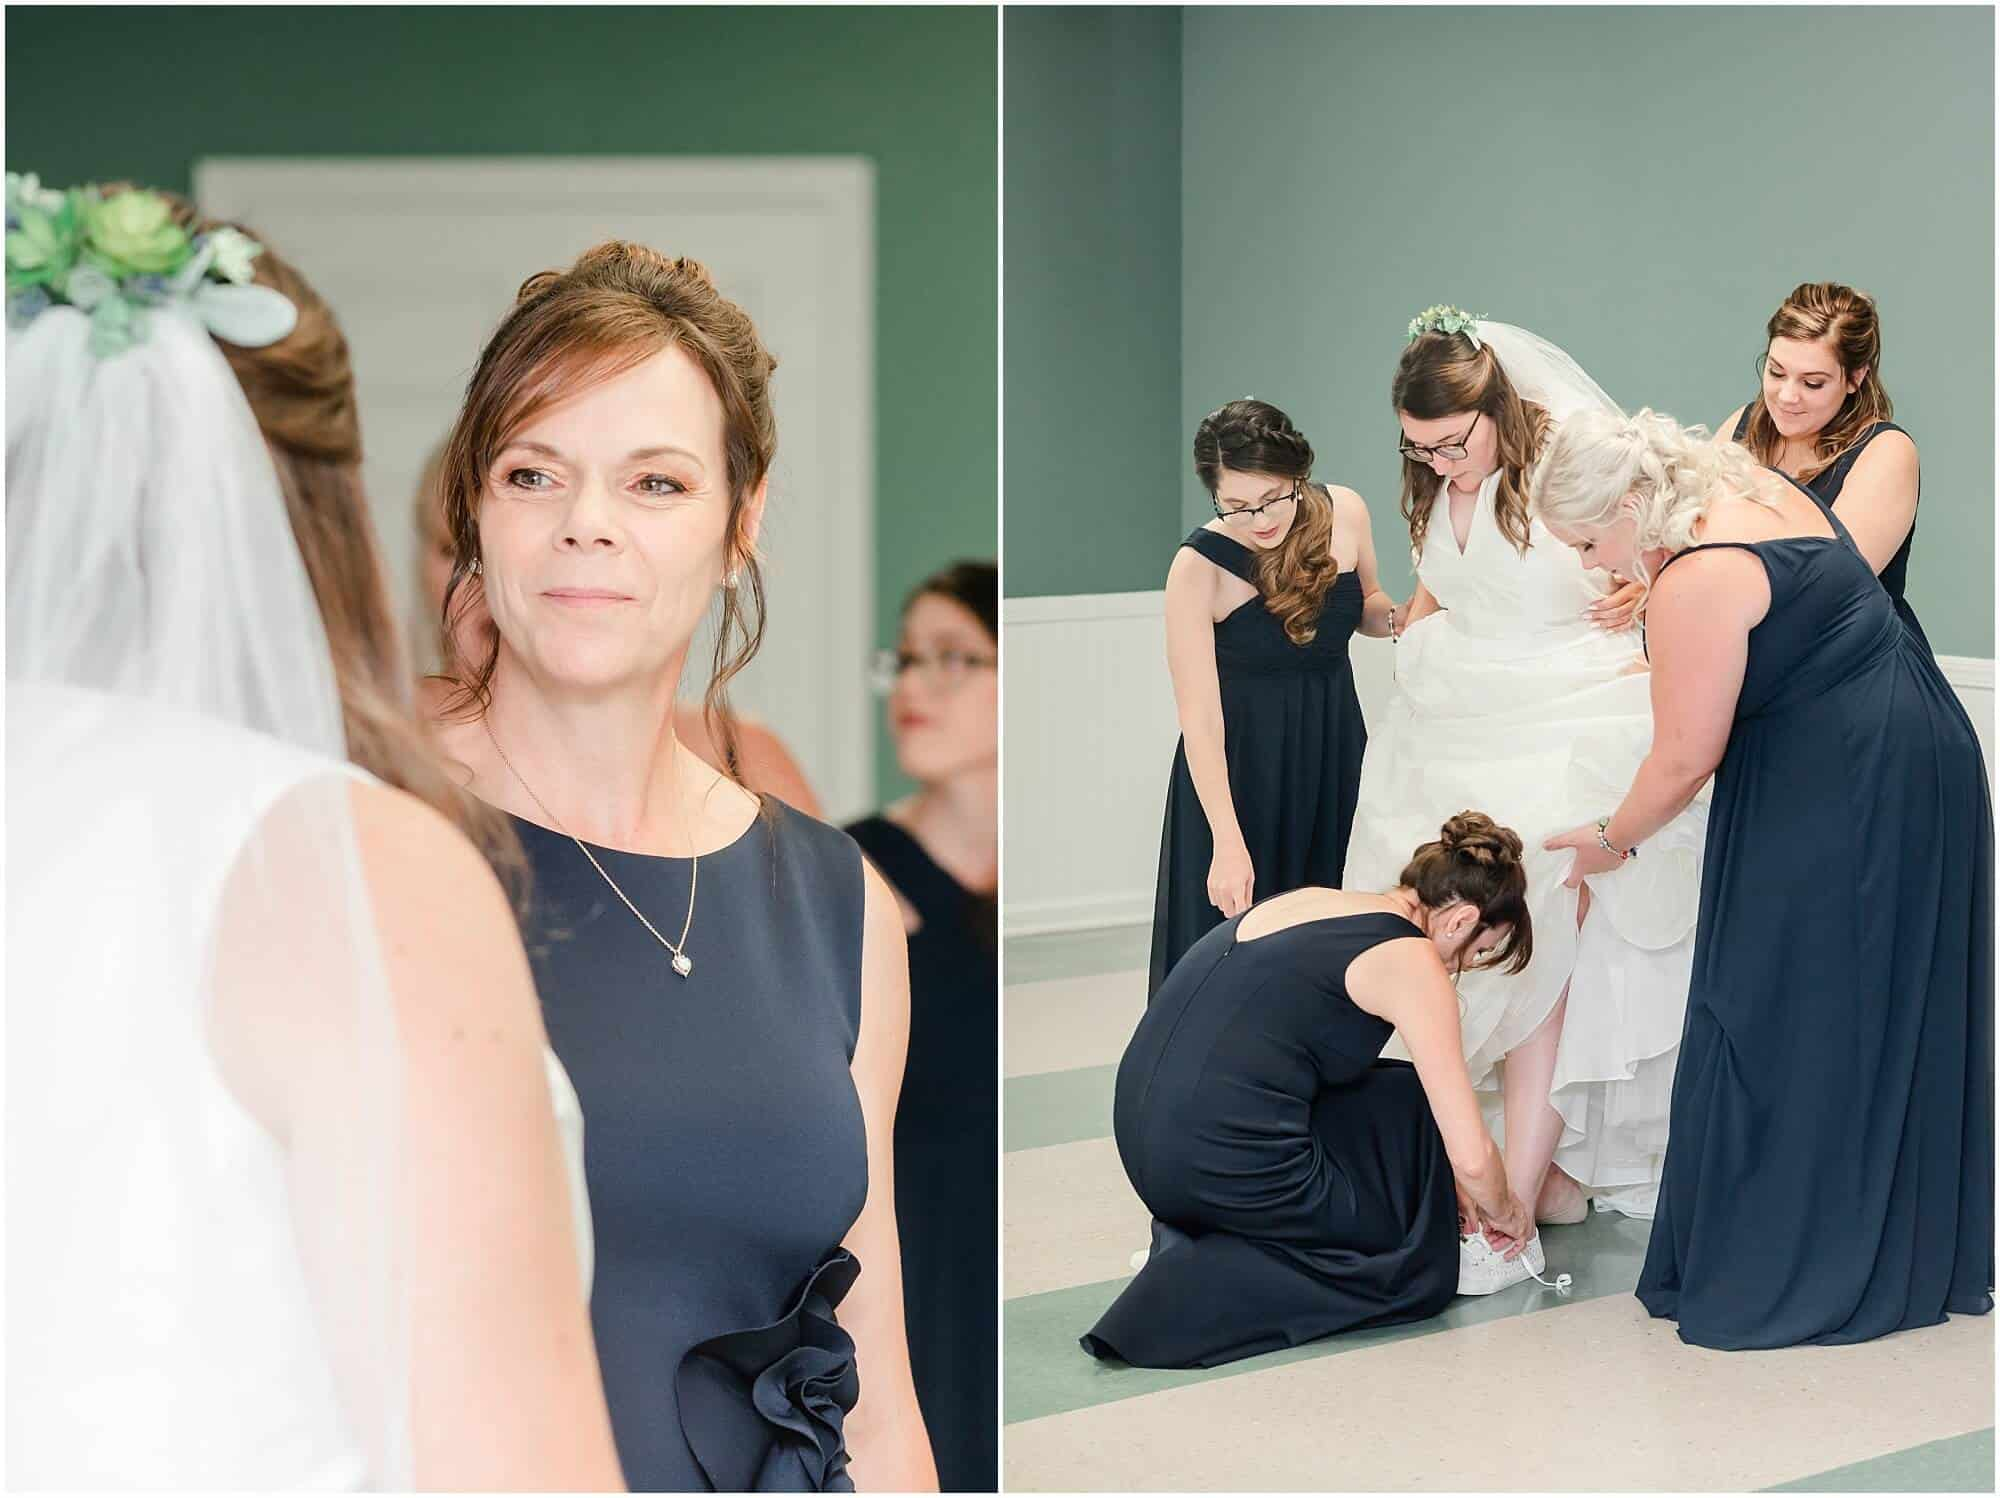 bride preparing with bridesmaids and mother in church basement by tiffany murray